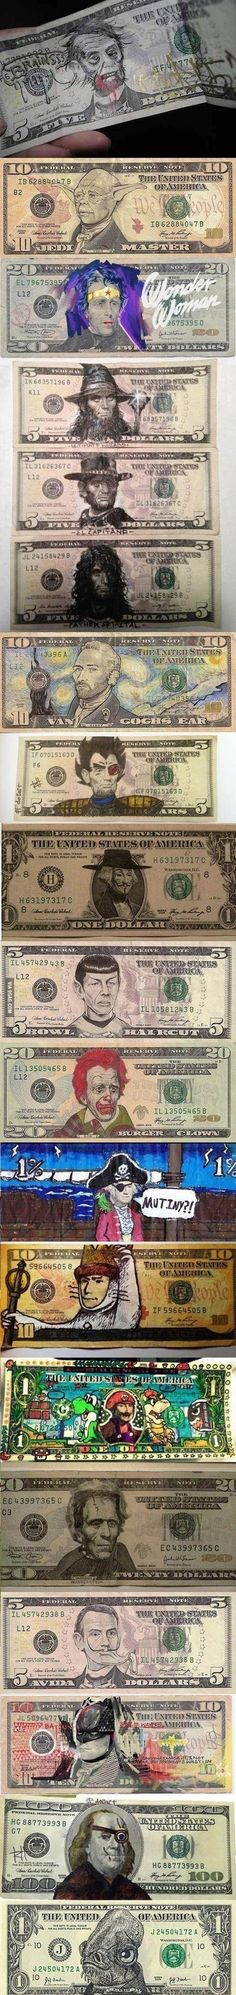 if I ever found cool money like this, I wouldn't spend it. so people, start drawing so I can find some!